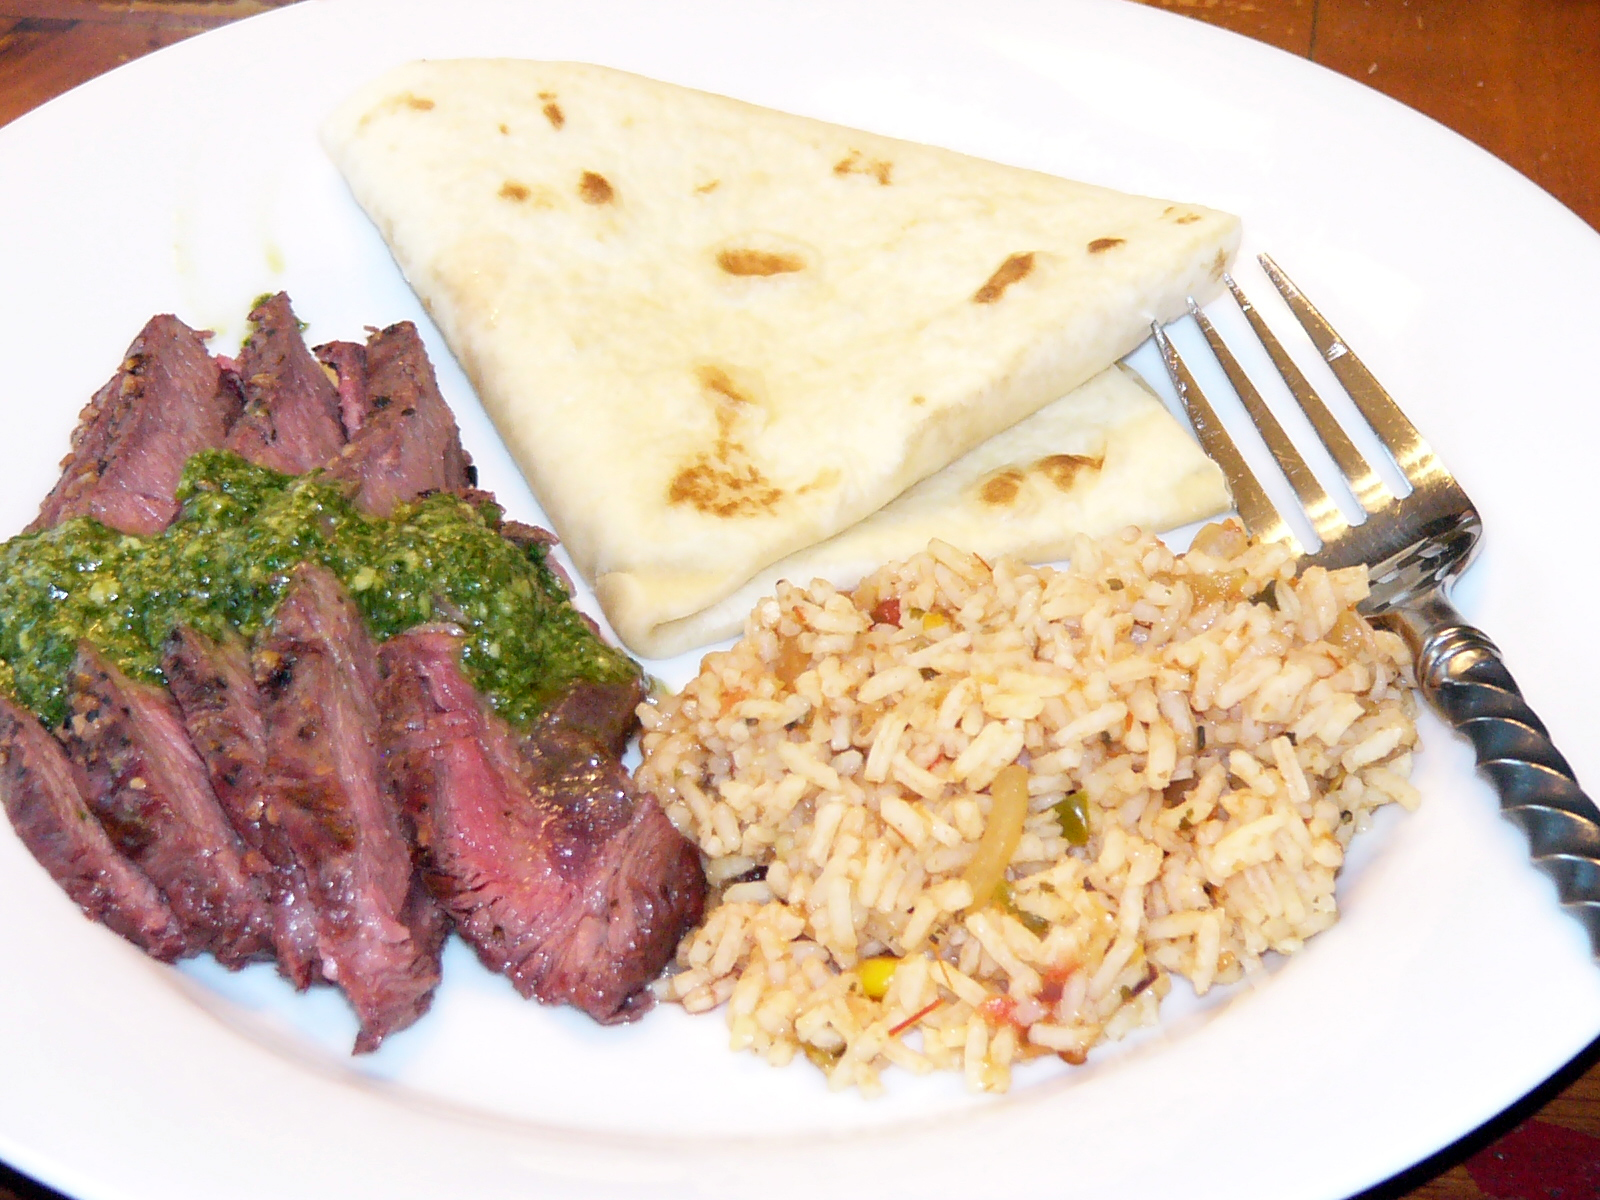 Grilled Flat Iron Steak With Chimichurri Sauce Recipes — Dishmaps